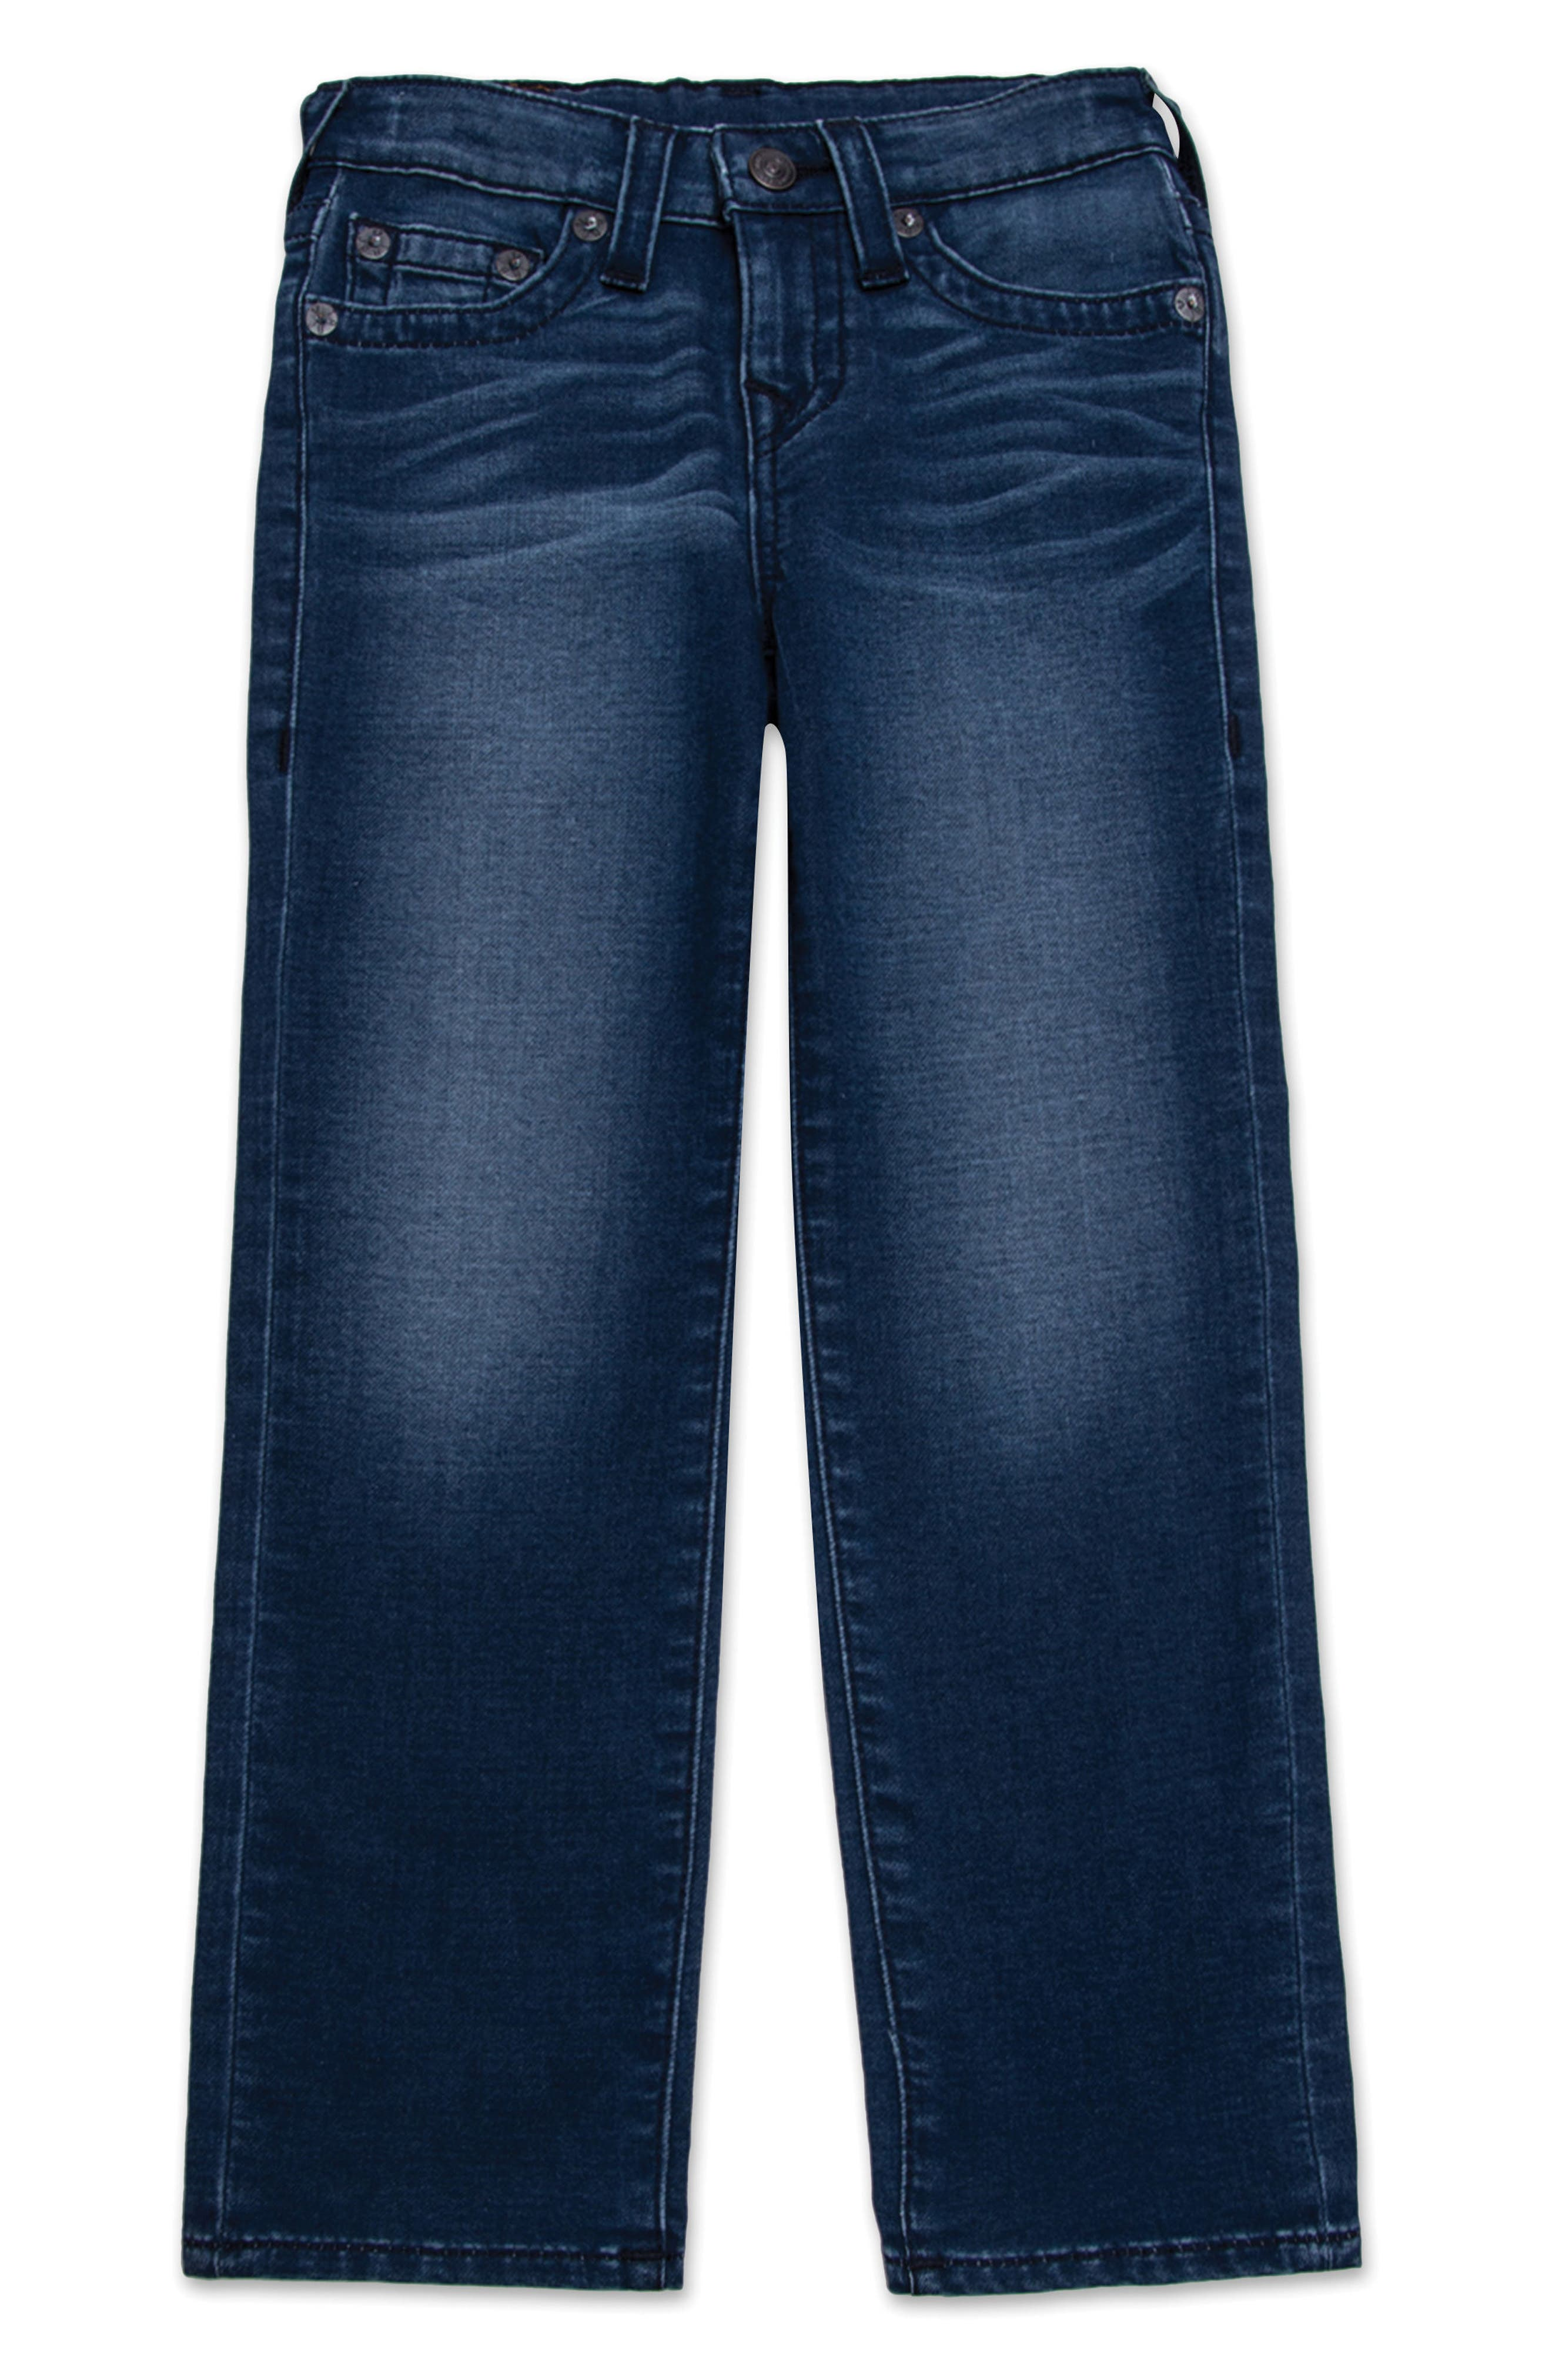 Alternate Image 1 Selected - True Religion Brand Jeans Geno Single End Straight Leg Jeans (Toddler Boys & Little Boys)